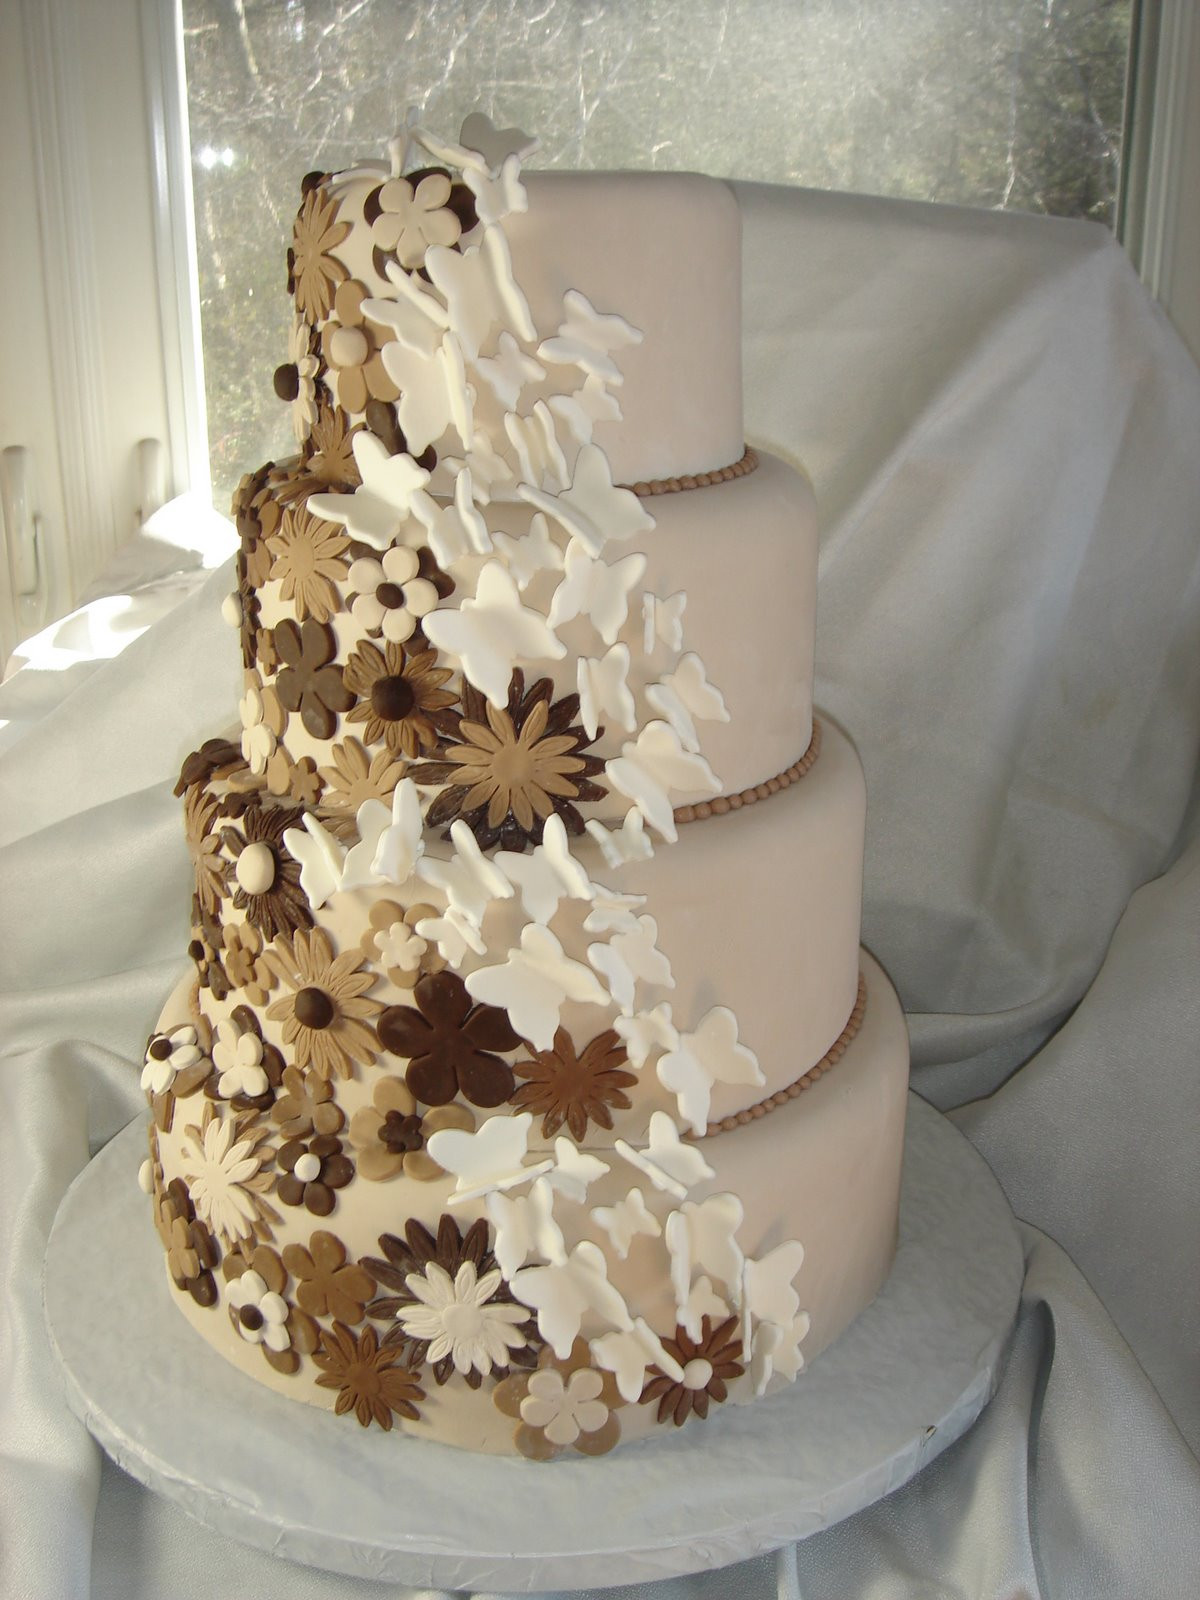 Wedding Cakes Greenville Sc the 20 Best Ideas for Wedding Cakes Greenville Sc